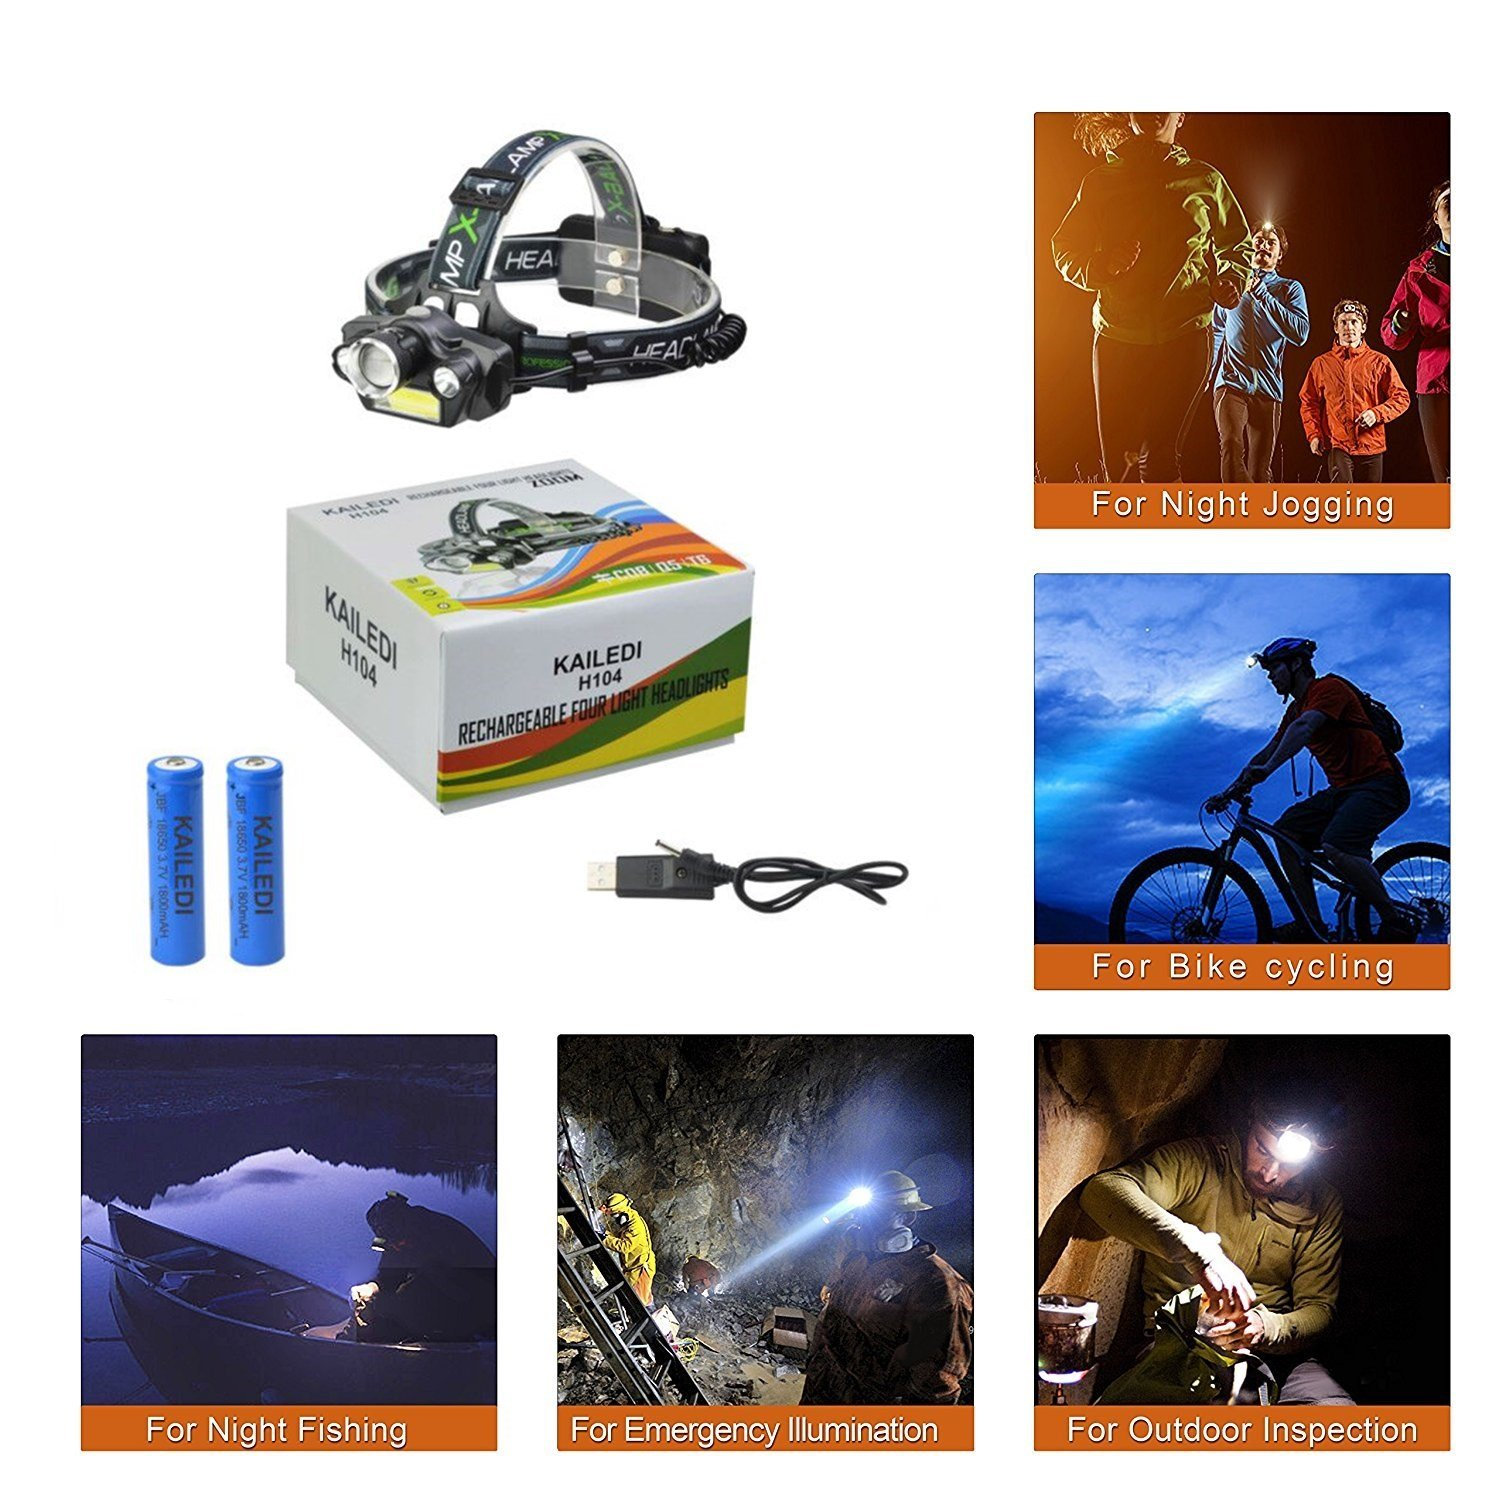 LED Headlamp Flashlight, USB Rechargeable LED Headlamp- Waterproof & Comfortable Headlight, Battery Powered Helmet Light, 8000 Lumen 4 Light 5 Modes Super Bright by KAILEDI. (Image #7)